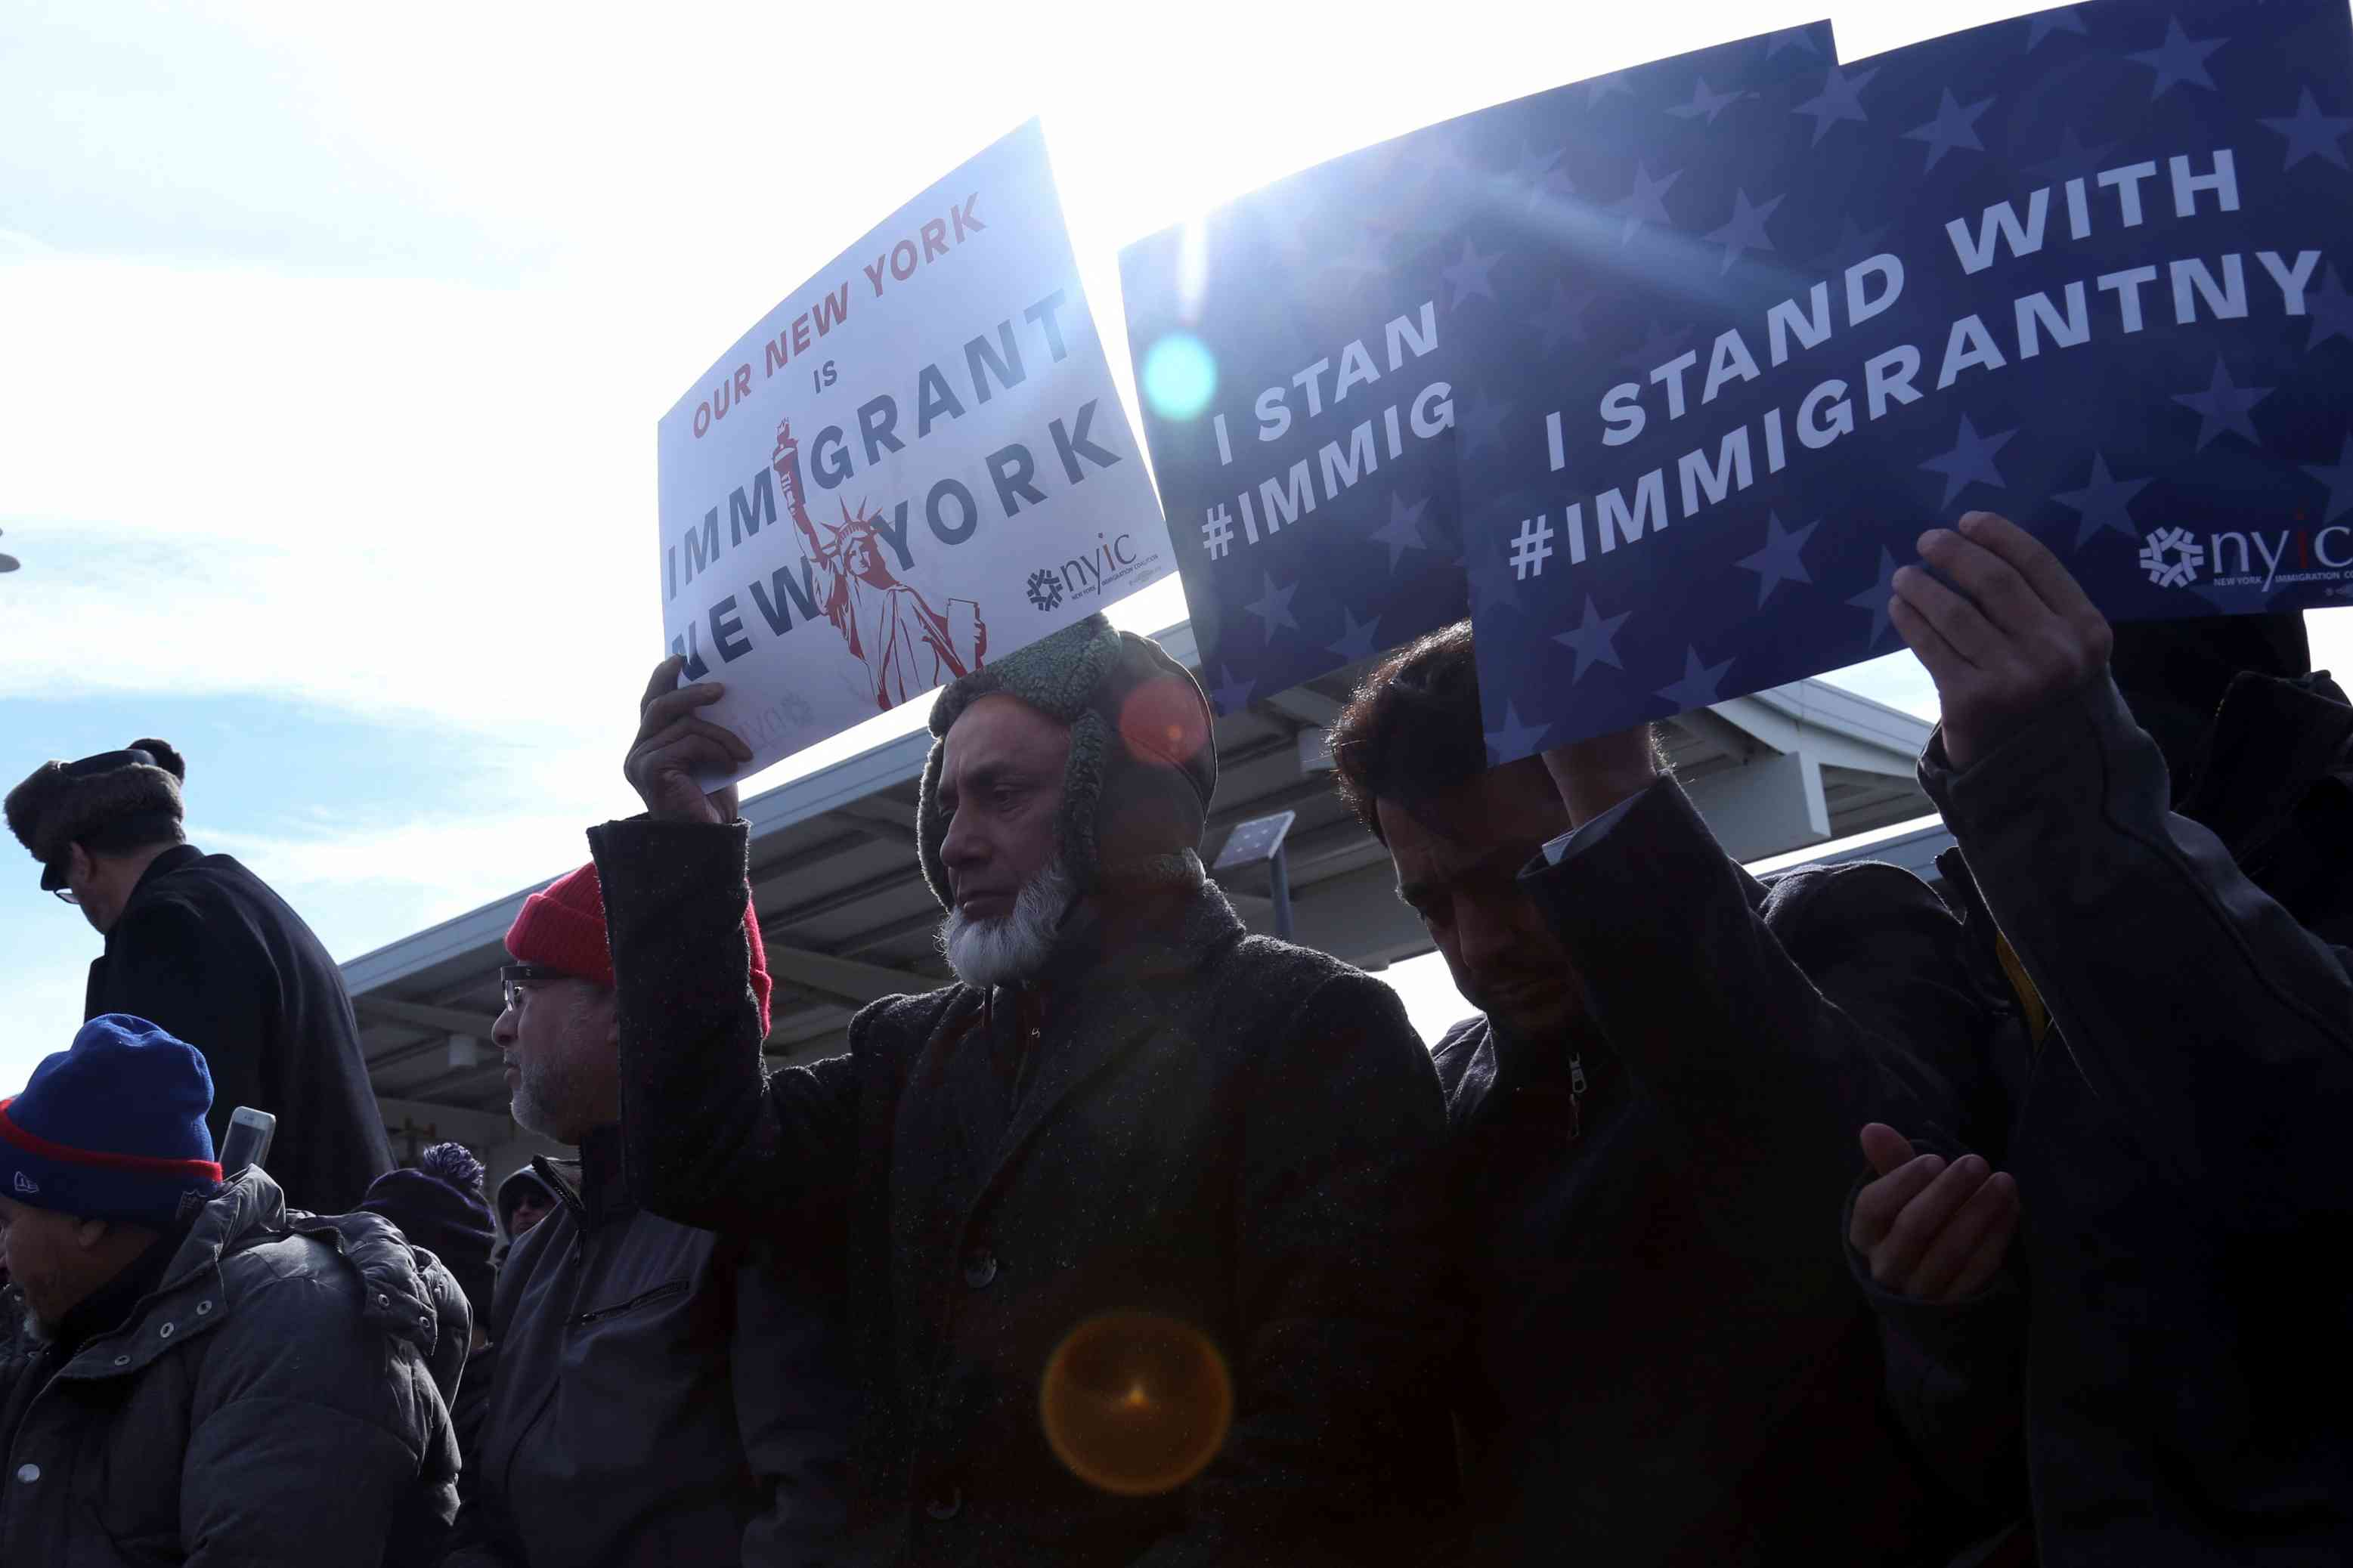 People hold signs during an interfaith action and Jummah prayer outside Terminal 4 at John F. Kennedy Airport in New York, U.S., February 3, 2017.